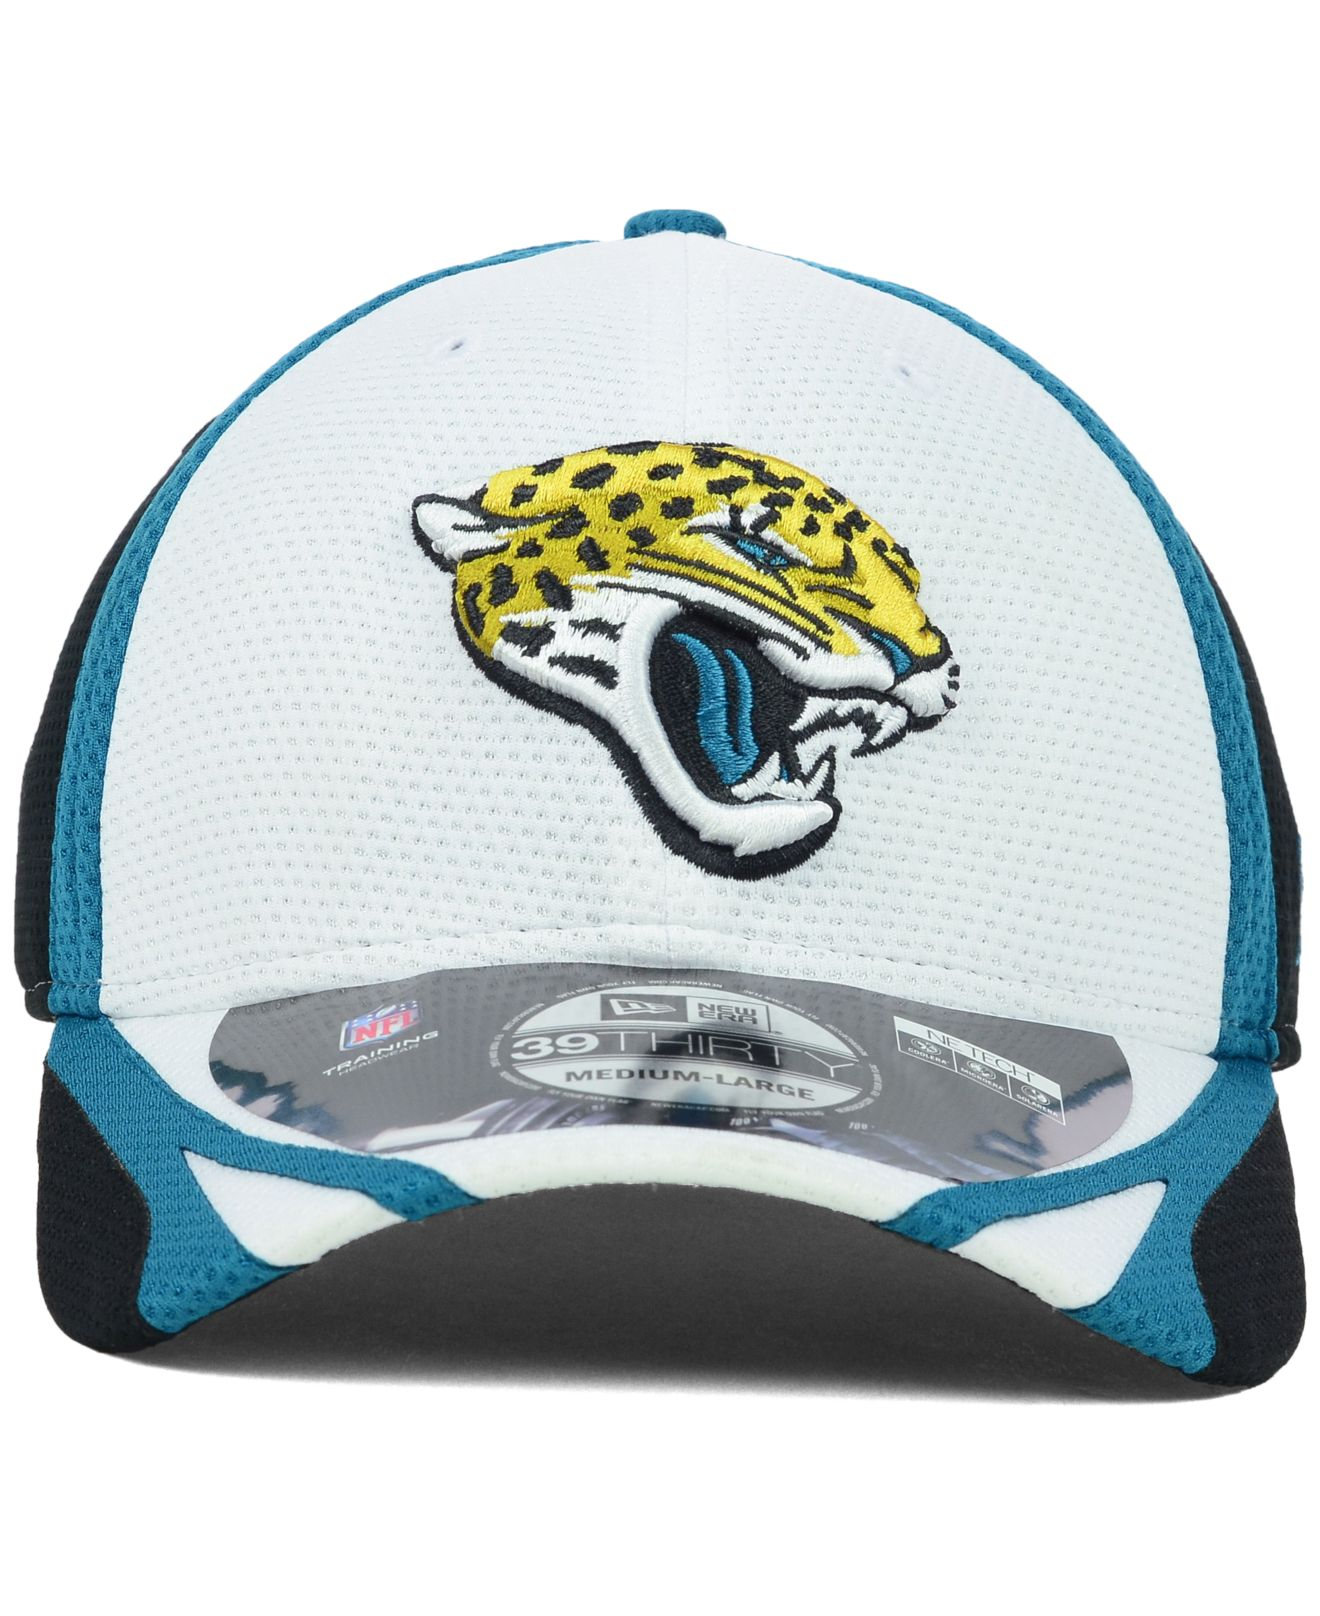 Jacksonville Jaguars Distressed Leather Man Bag